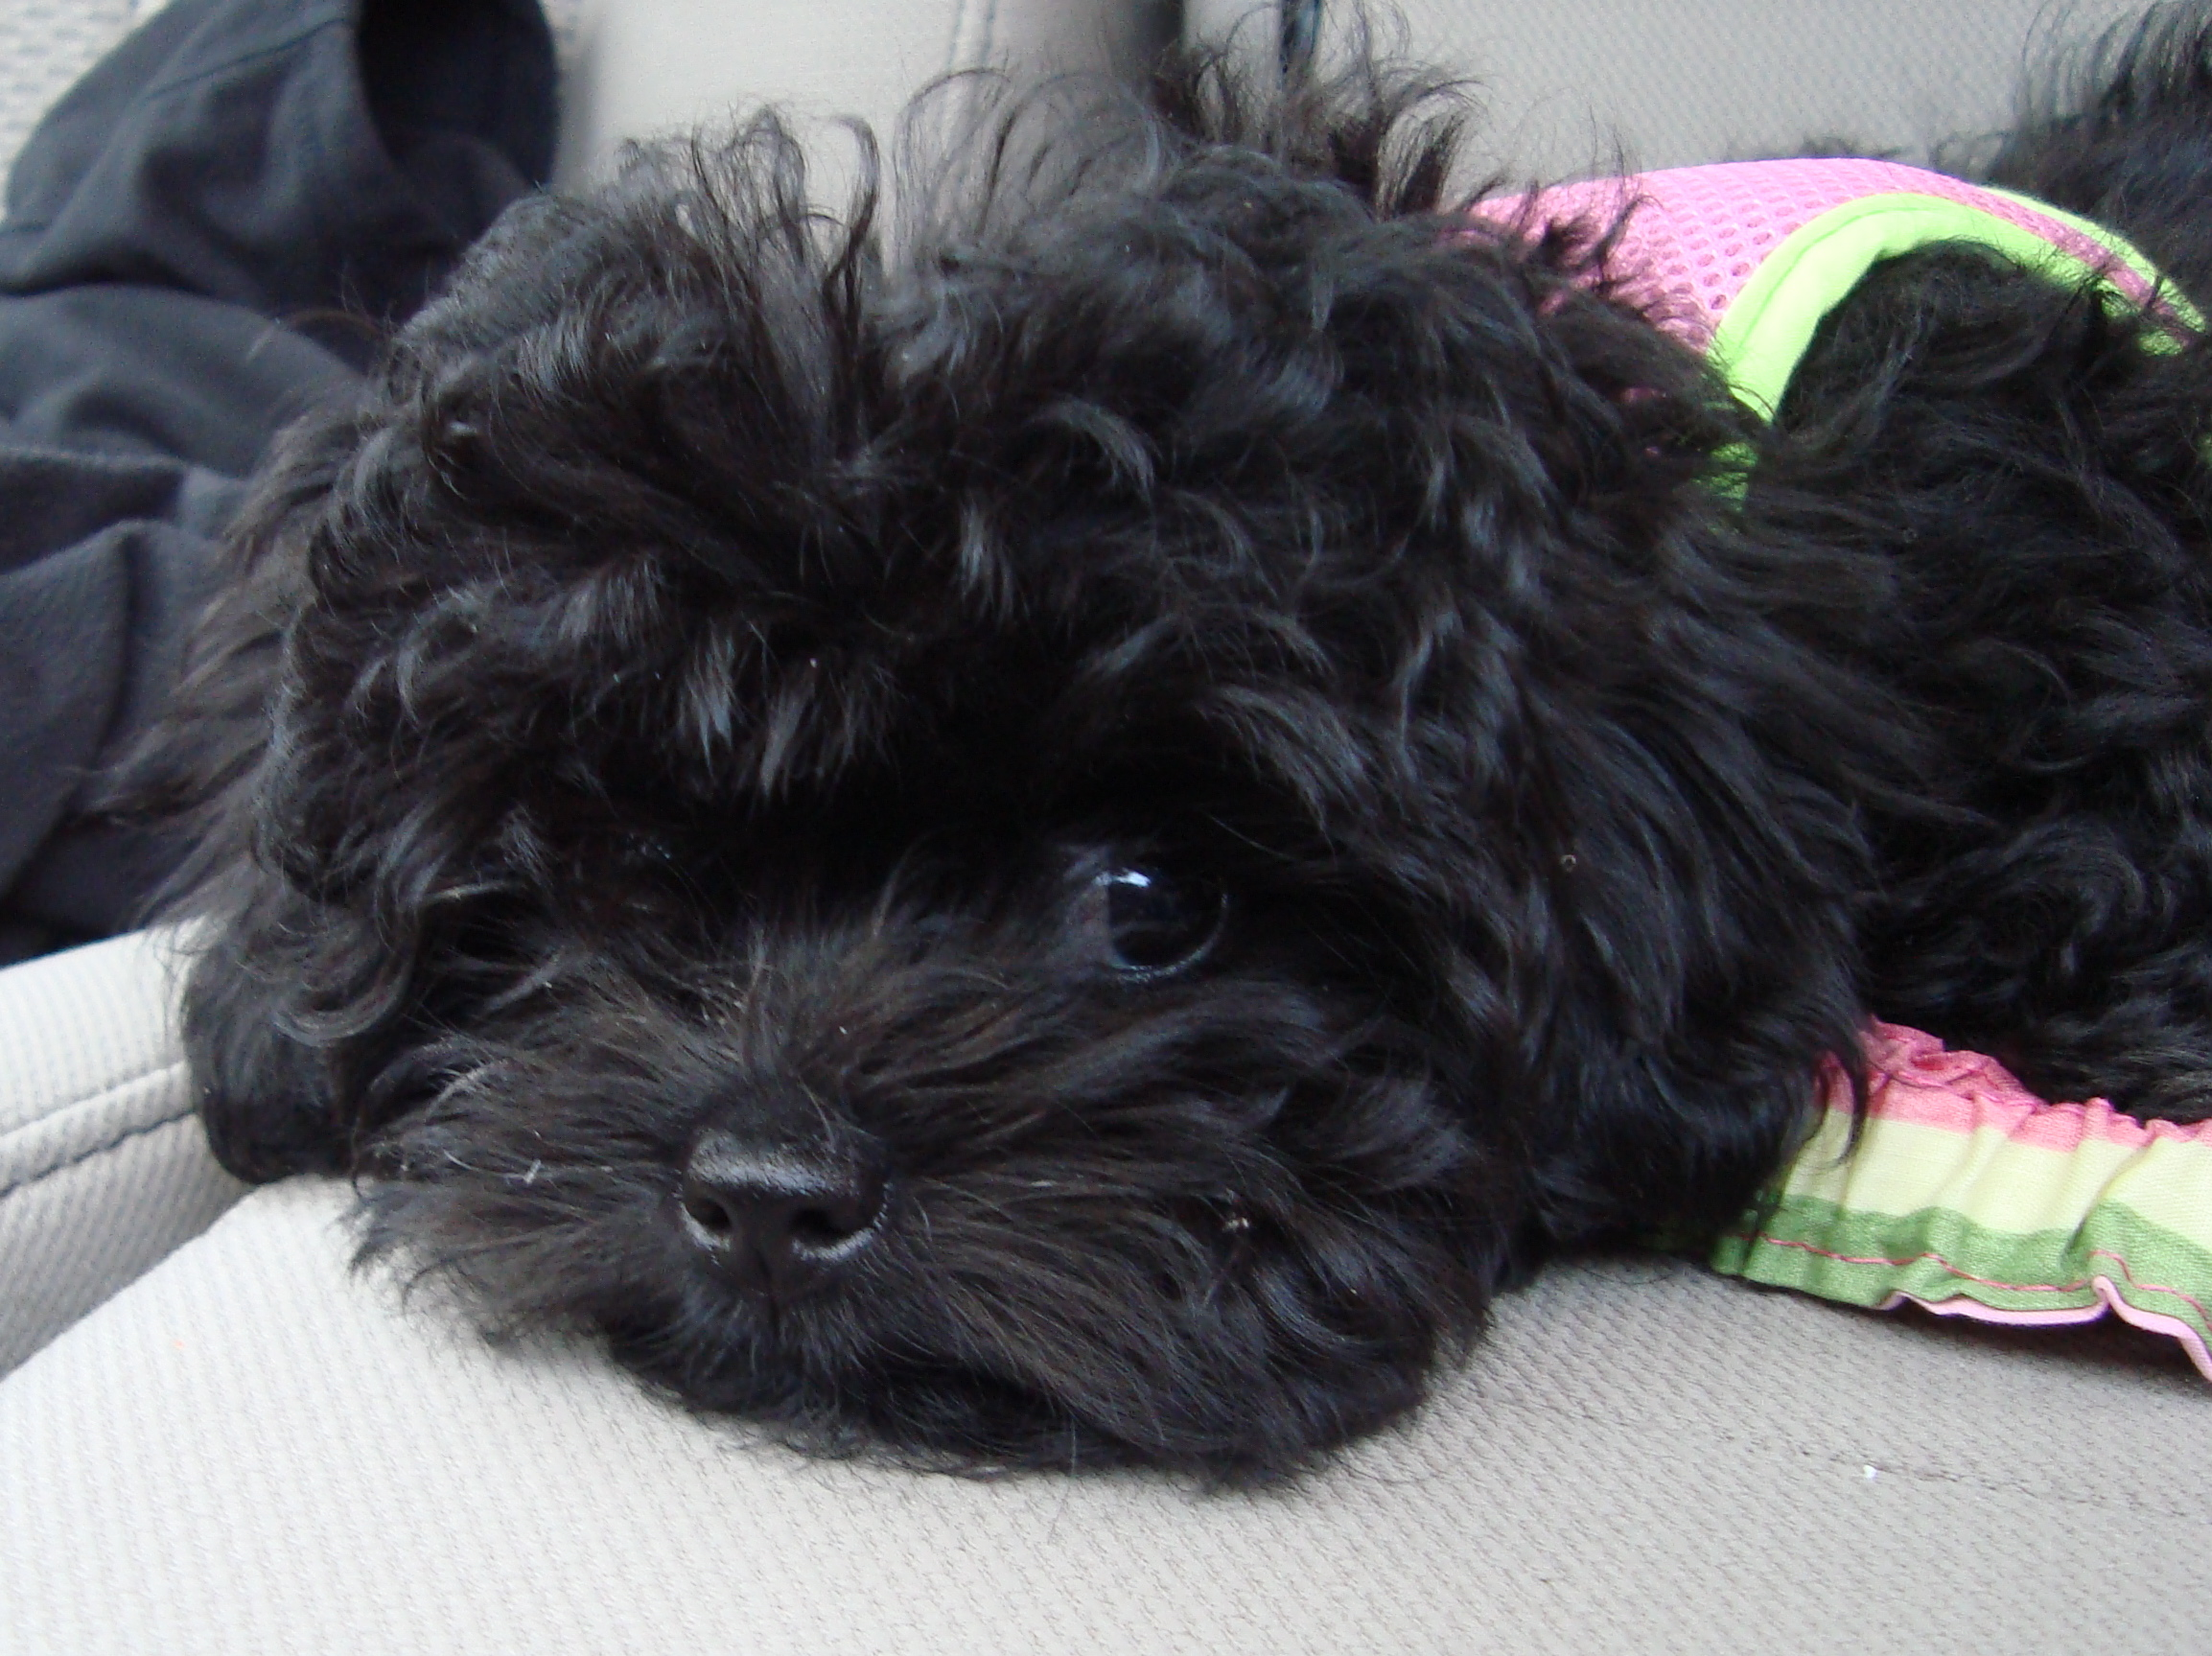 Shih Poo Full Grown Black Images & Pictures - Becuo